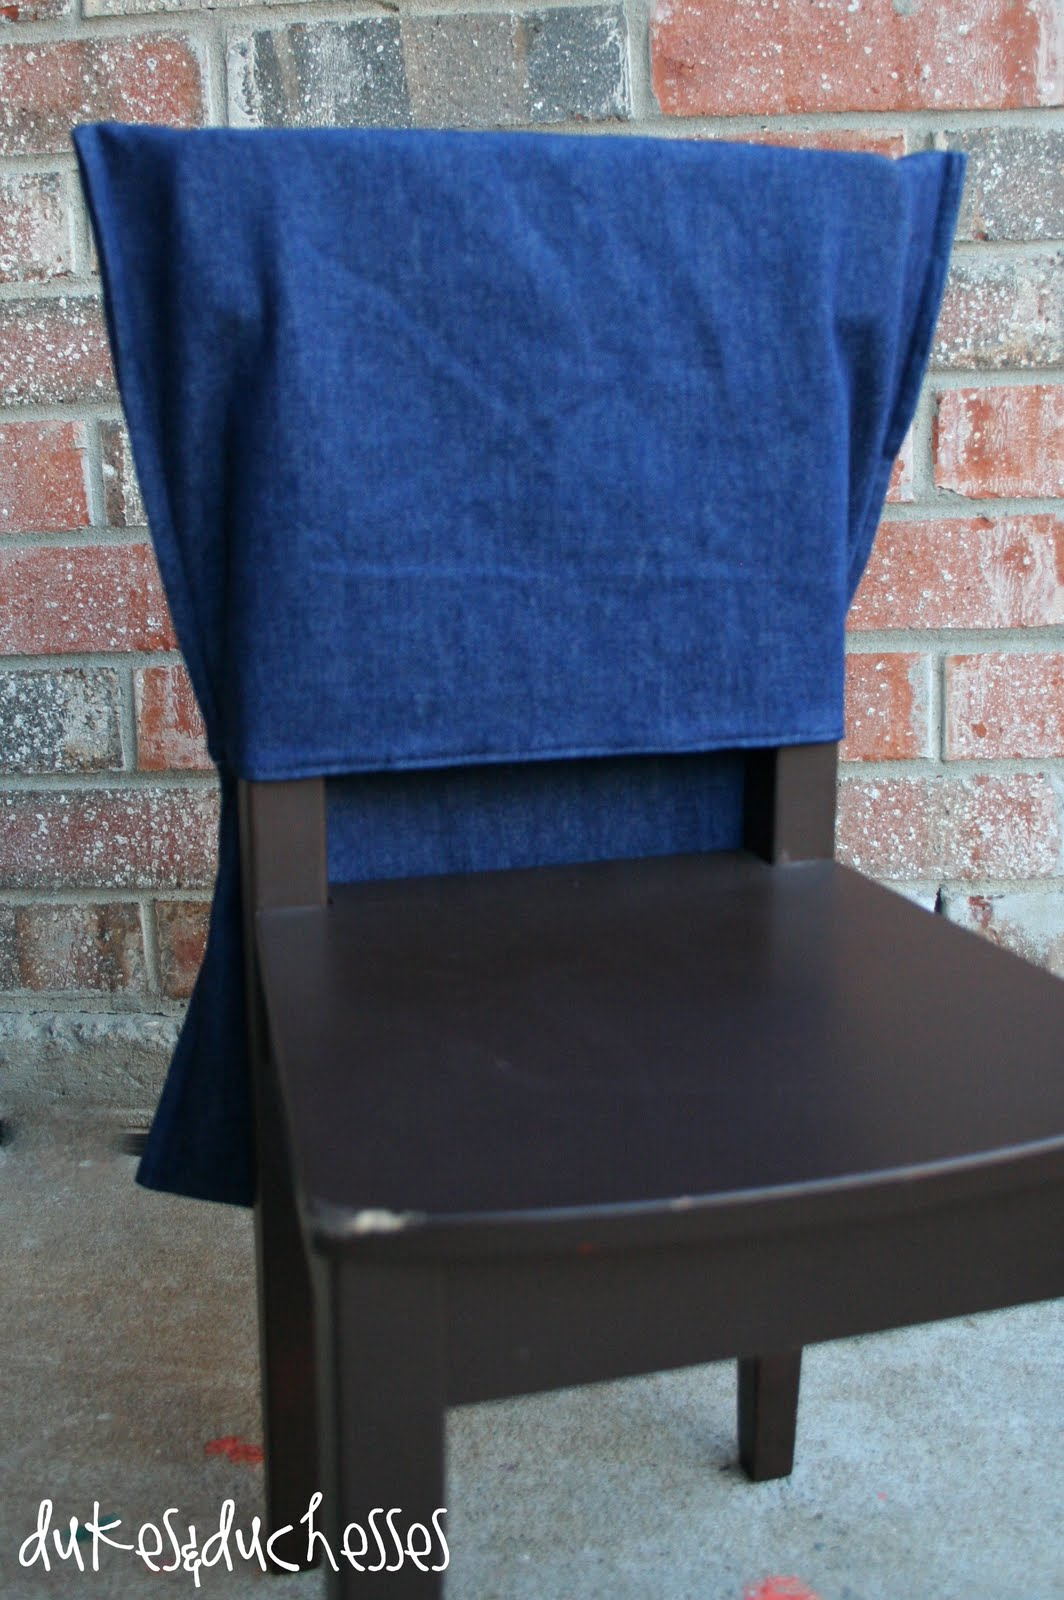 Chair Pockets for the Classroom & Chair Pockets for the Classroom - Dukes and Duchesses